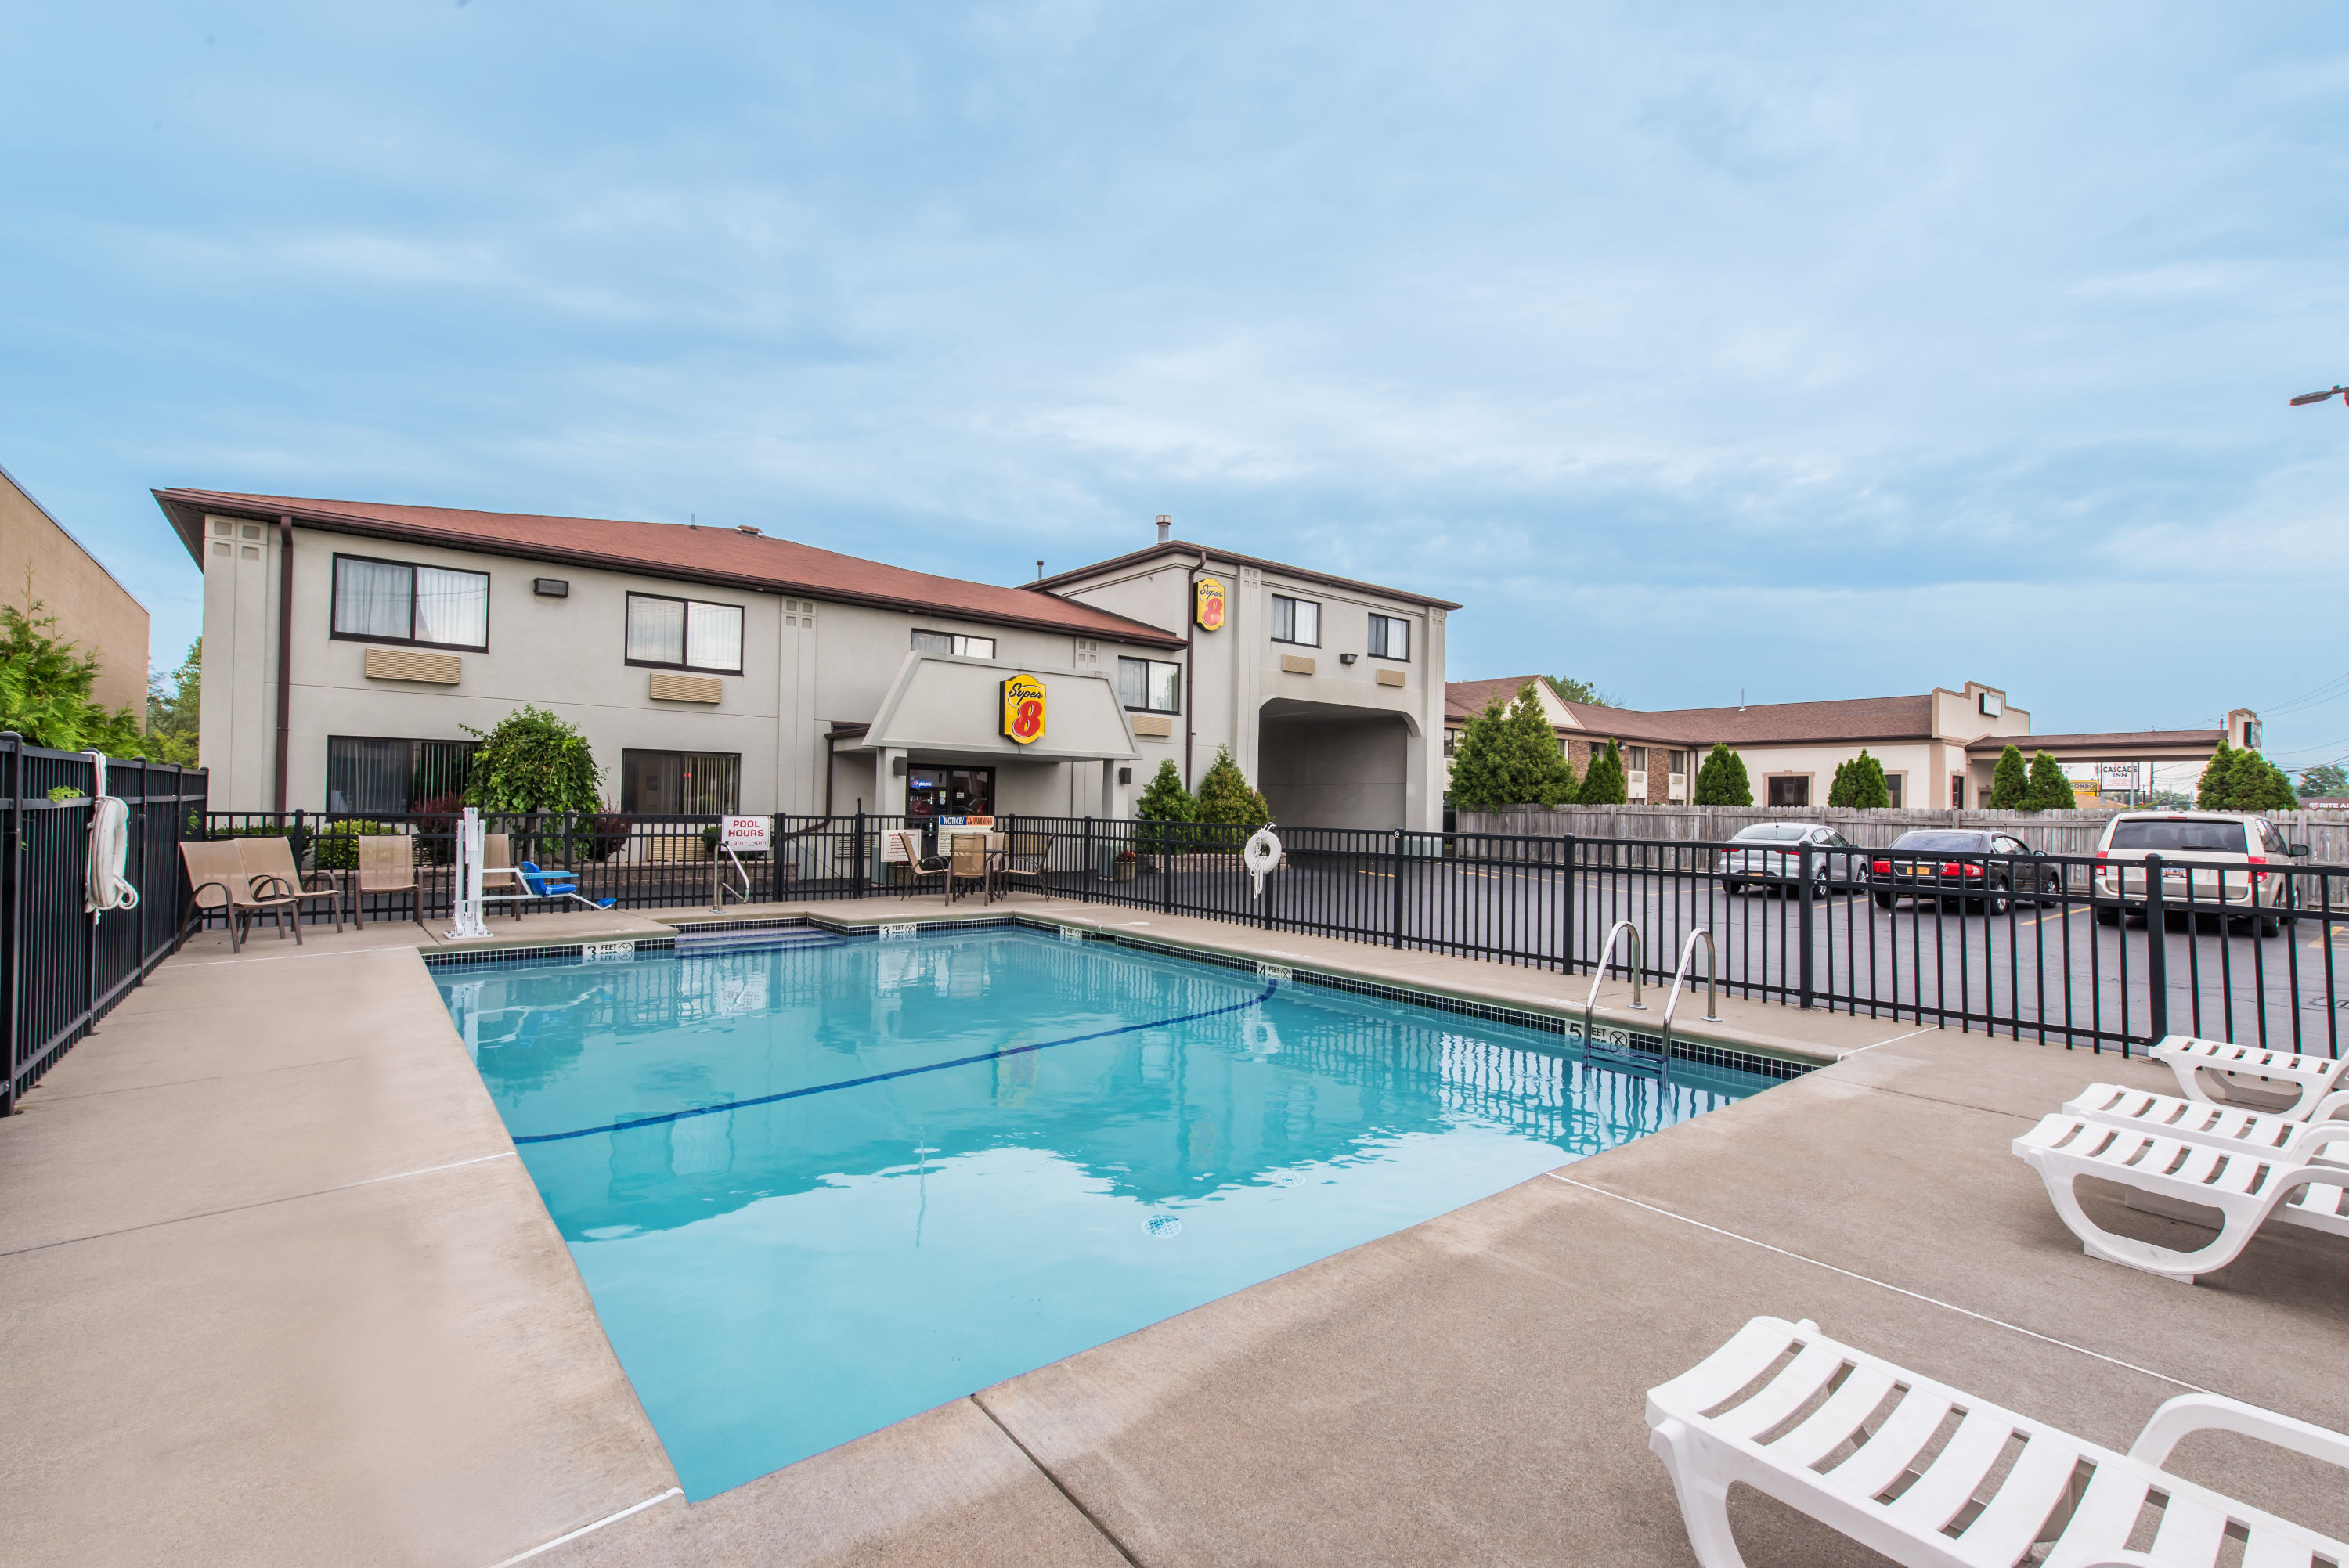 Super 8 by Wyndham- Niagara Falls, NY 14304 near Niagara Falls International Airport View Point 8